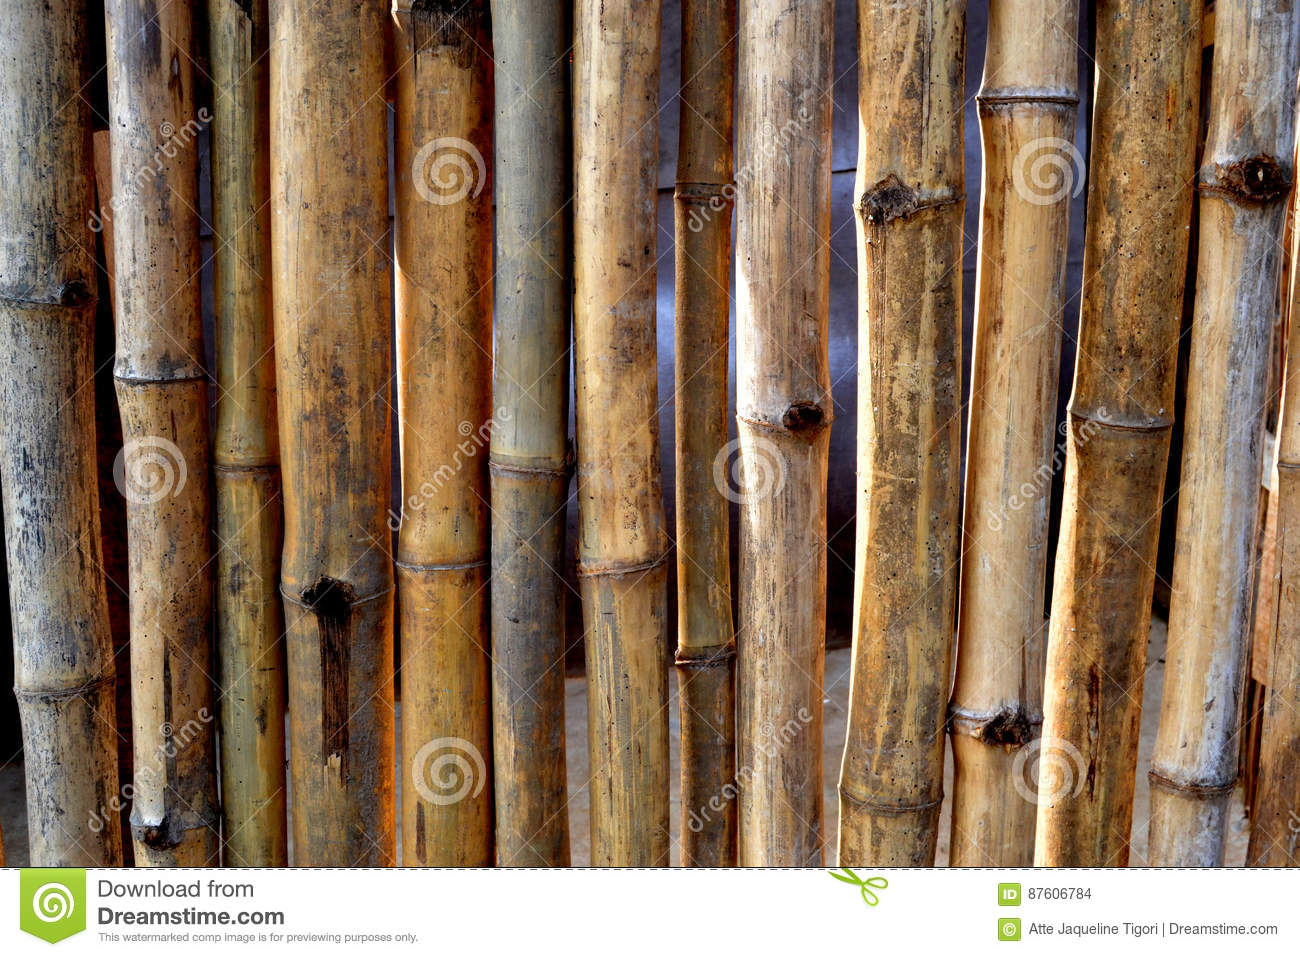 WALL AND DRY BAMBOO BARRIER